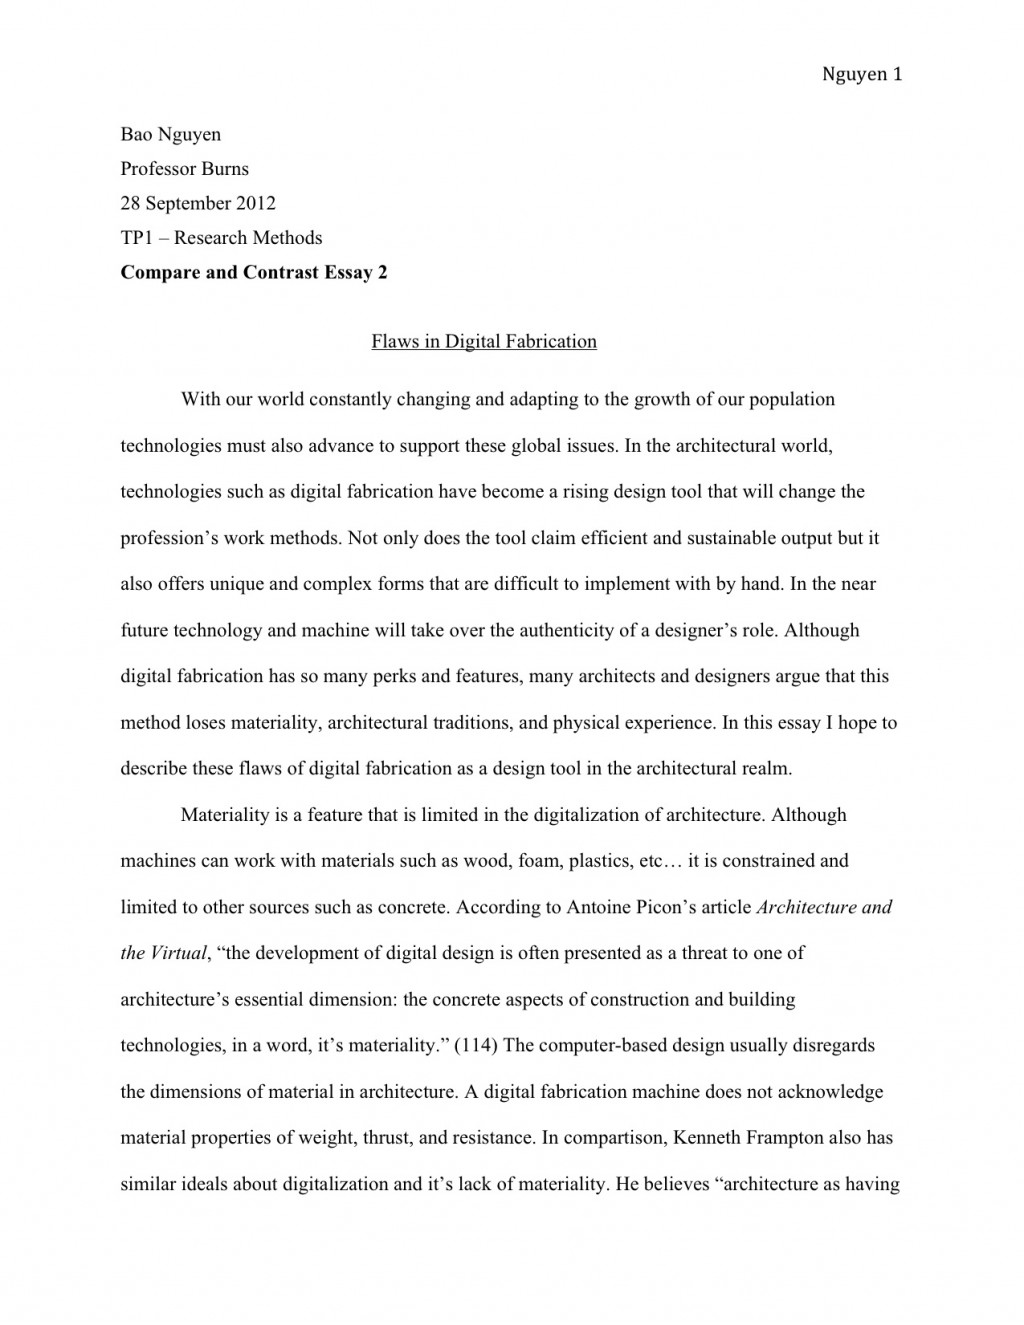 005 How To Write An Essay Example Tp1 3 Shocking In Mla Format 2018 Introduction For College Paper Apa Large